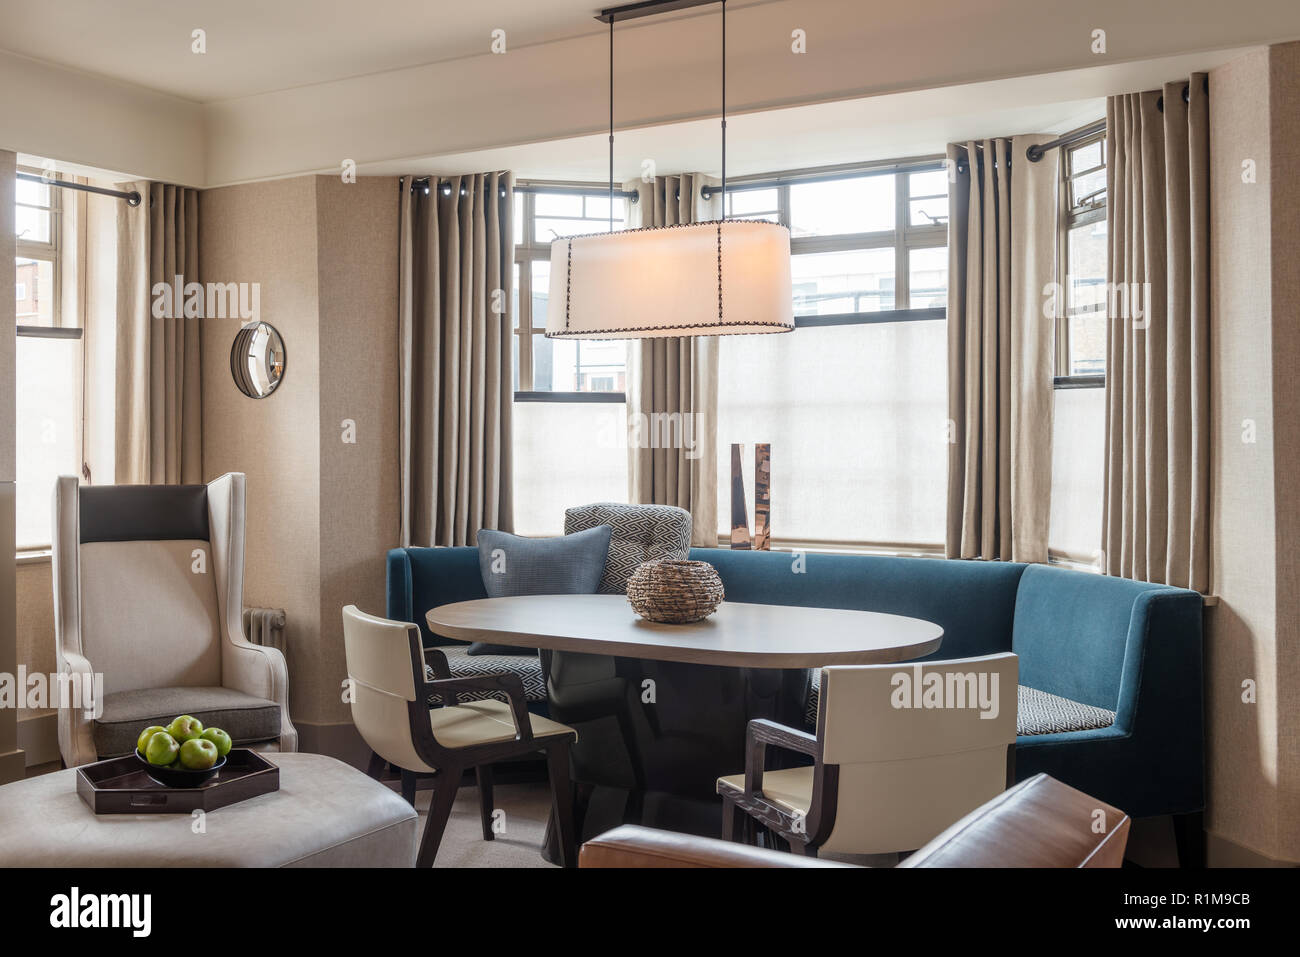 Blue And Grey Toned Dining Room By Bay Window Stock Photo Alamy